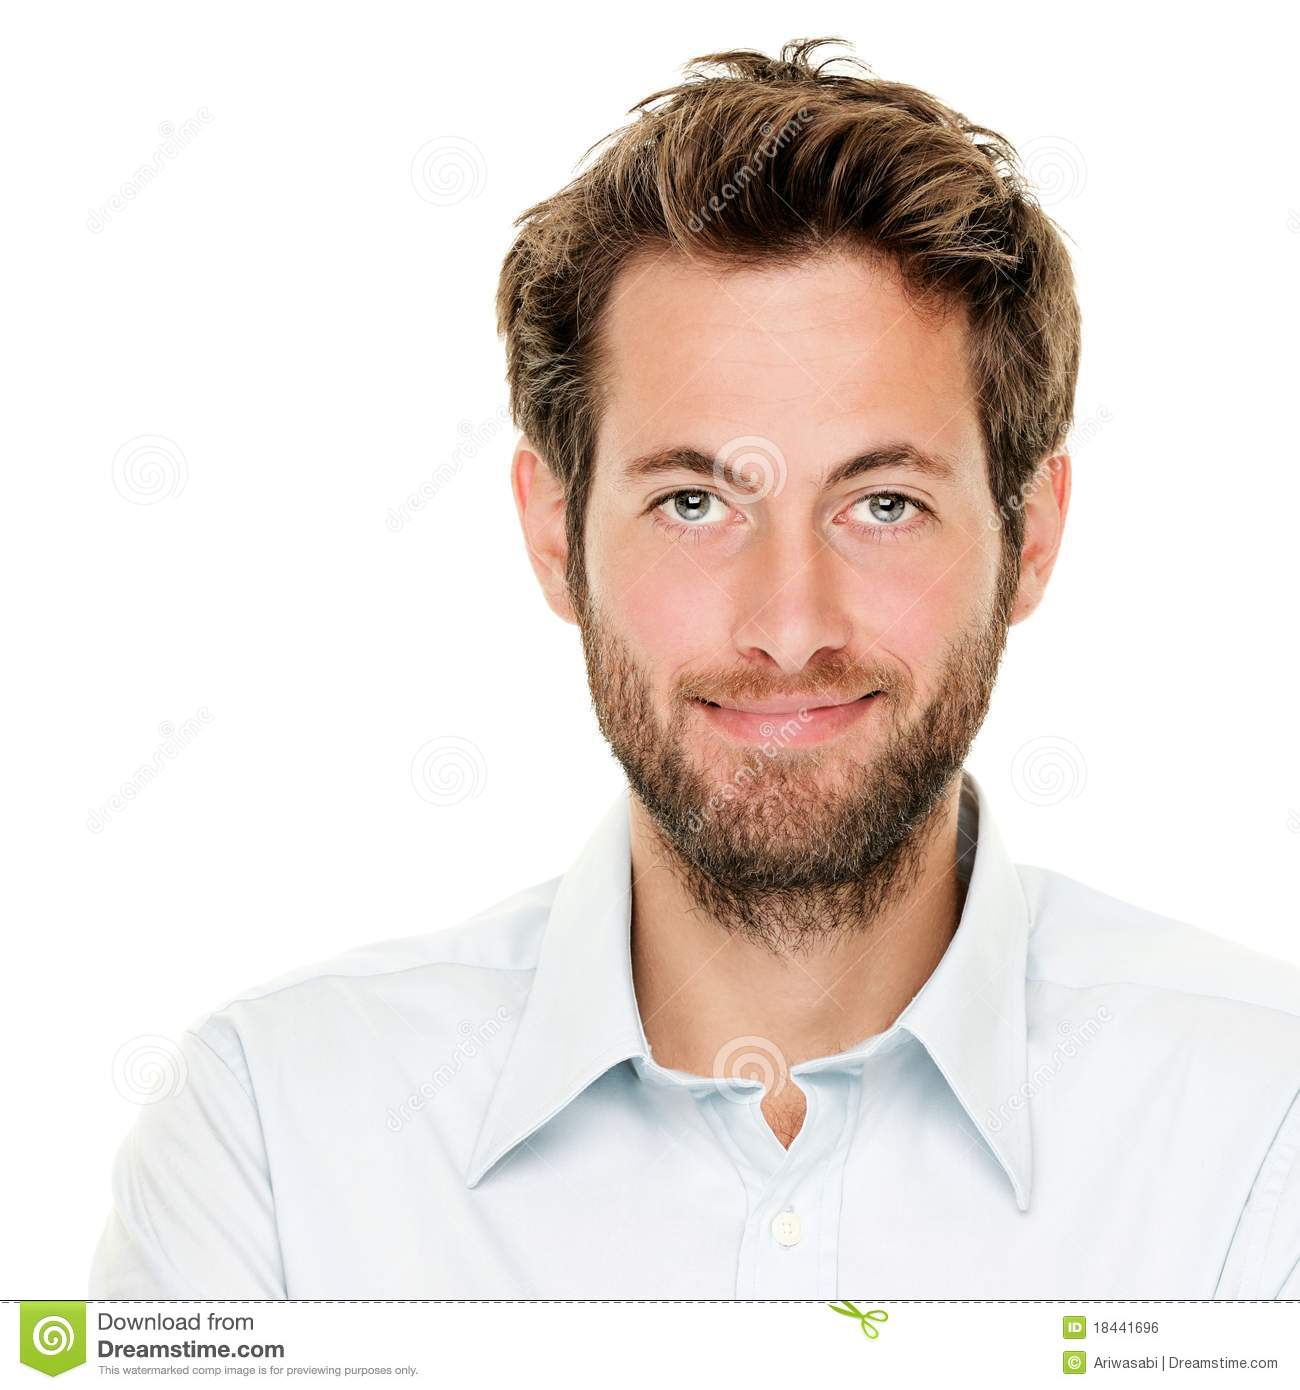 Young Man Portrait Royalty Free Stock Image  Image 18441696